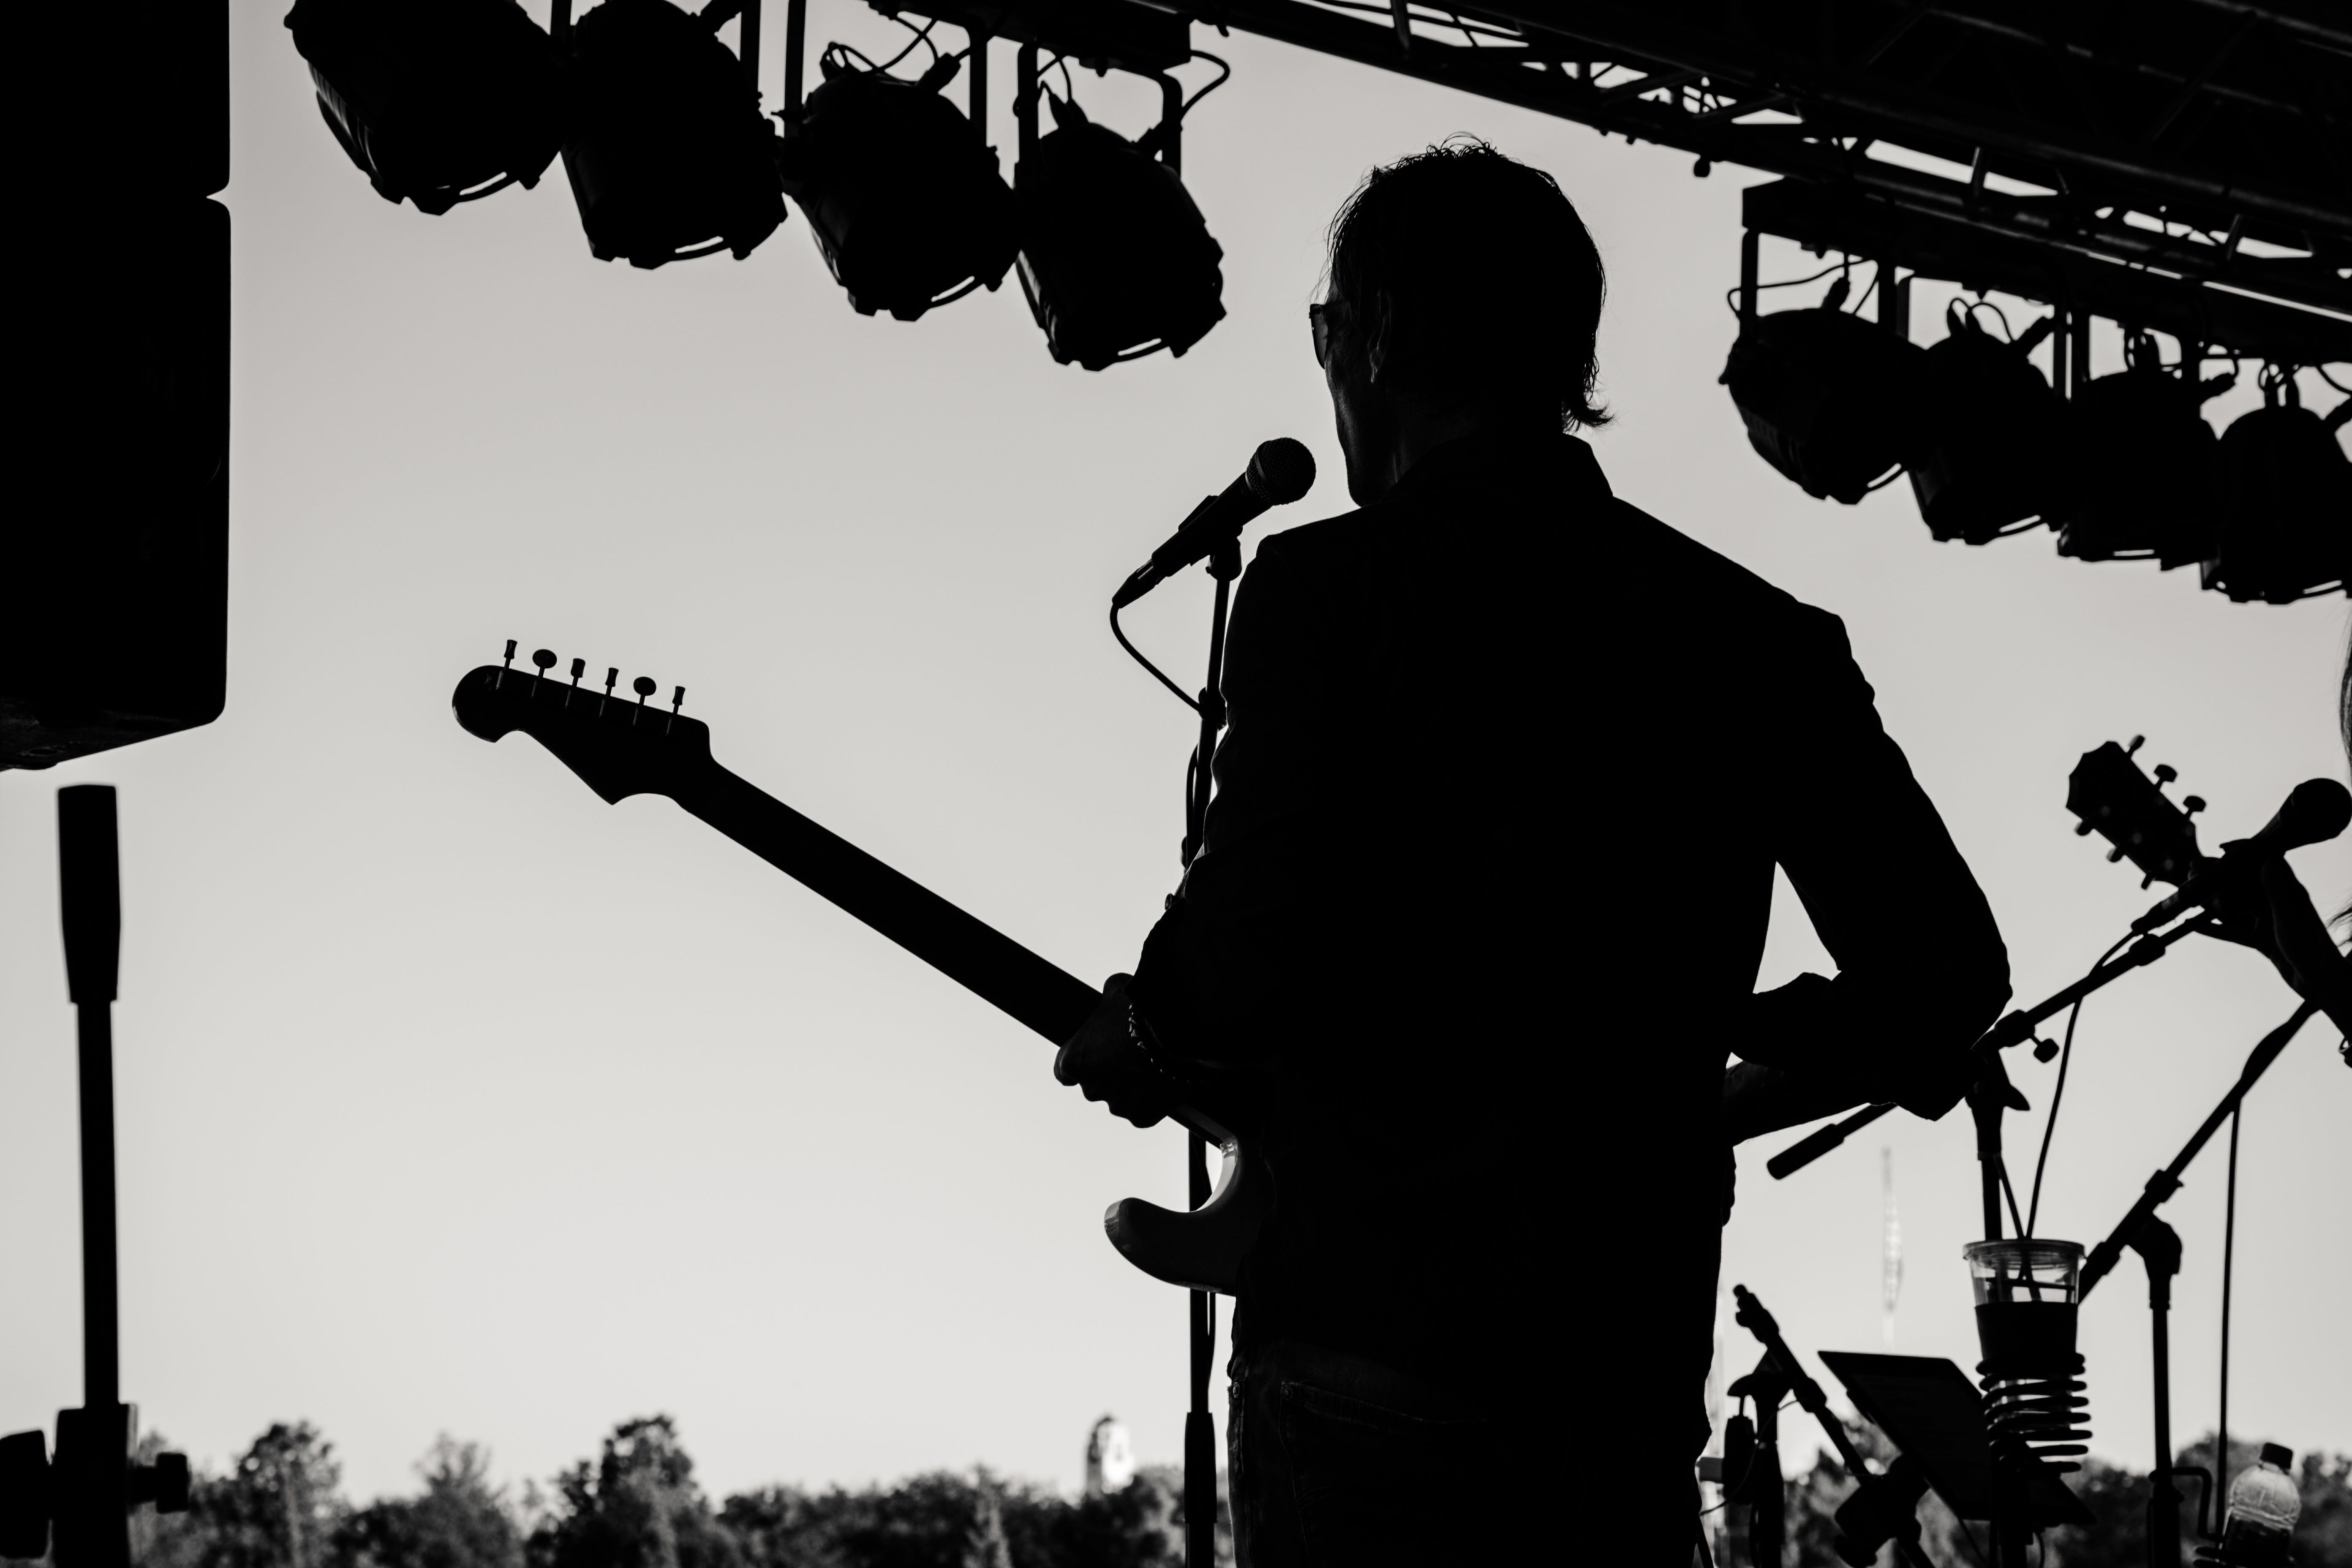 Silhouette Photo of Man Holding Guitar